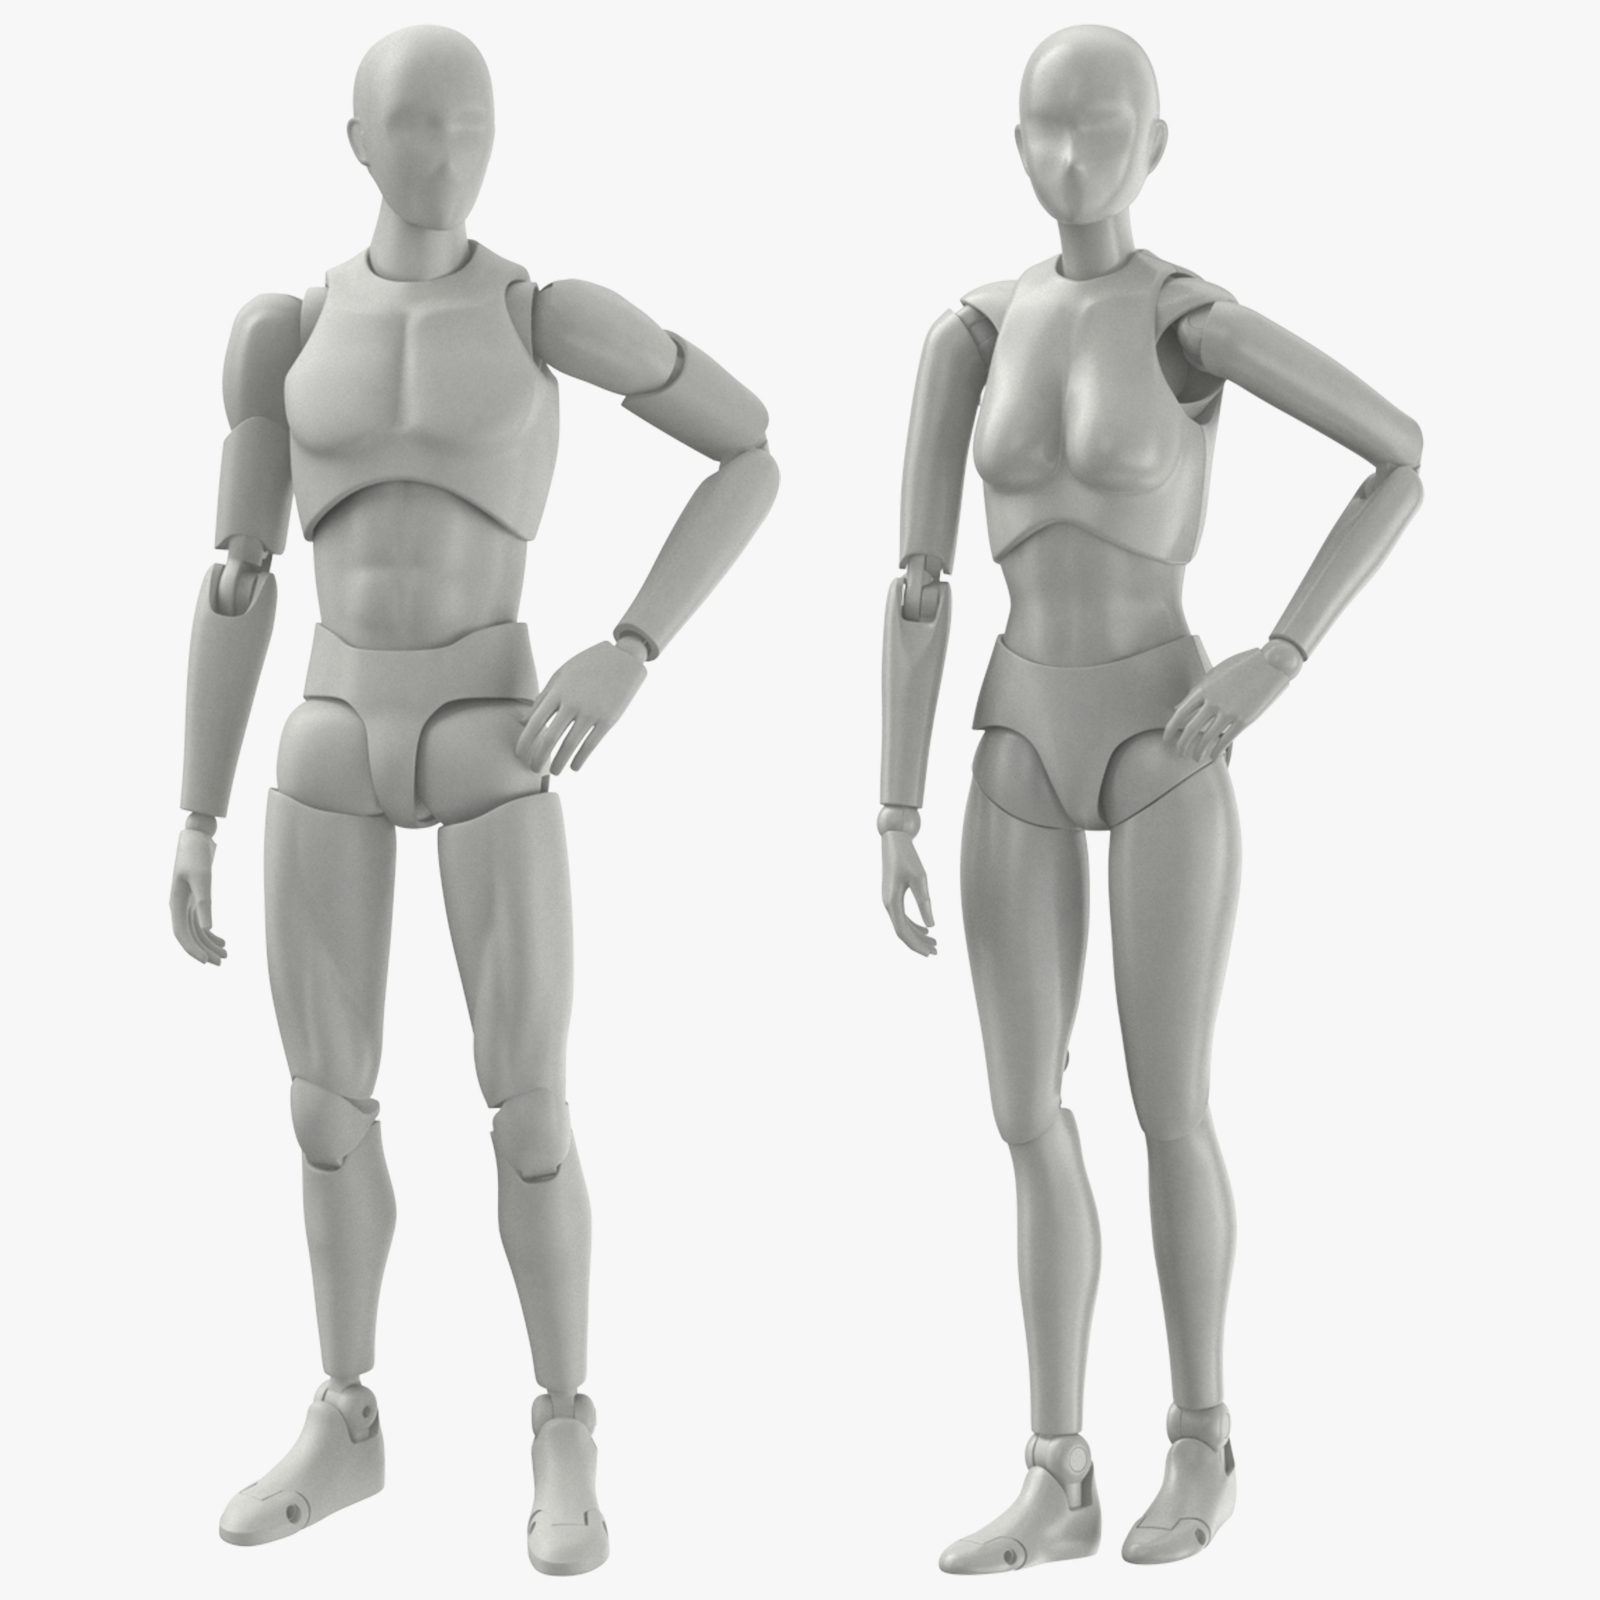 Mannequin Male and Female 3D Models